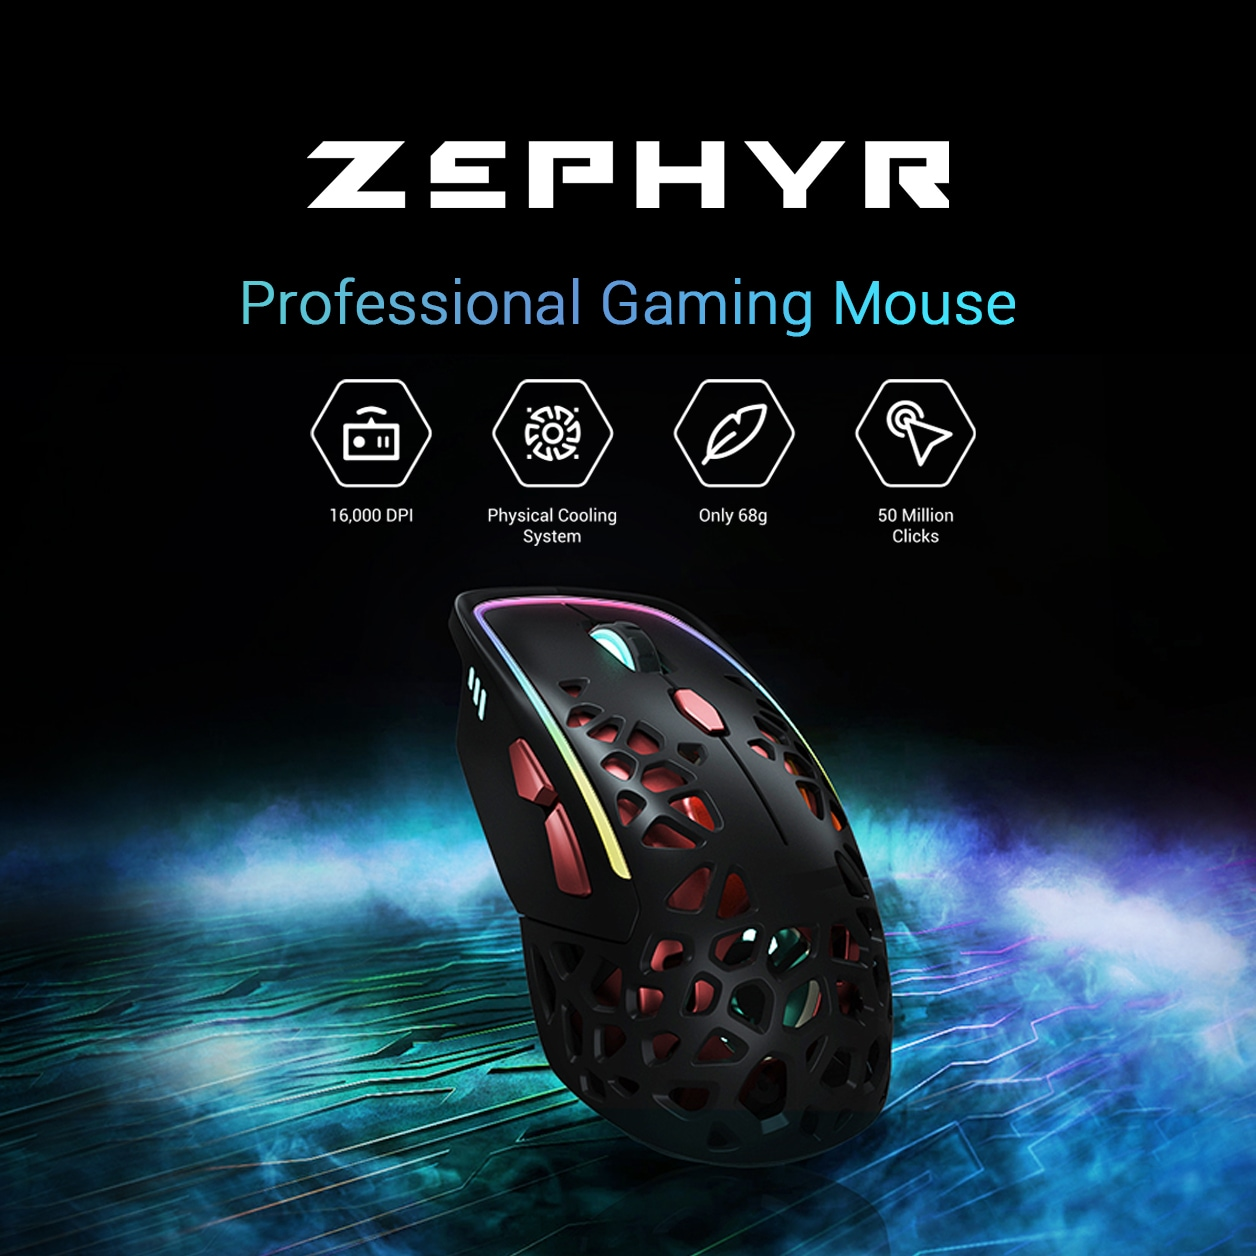 Zephyr Gaming Mouse (1)